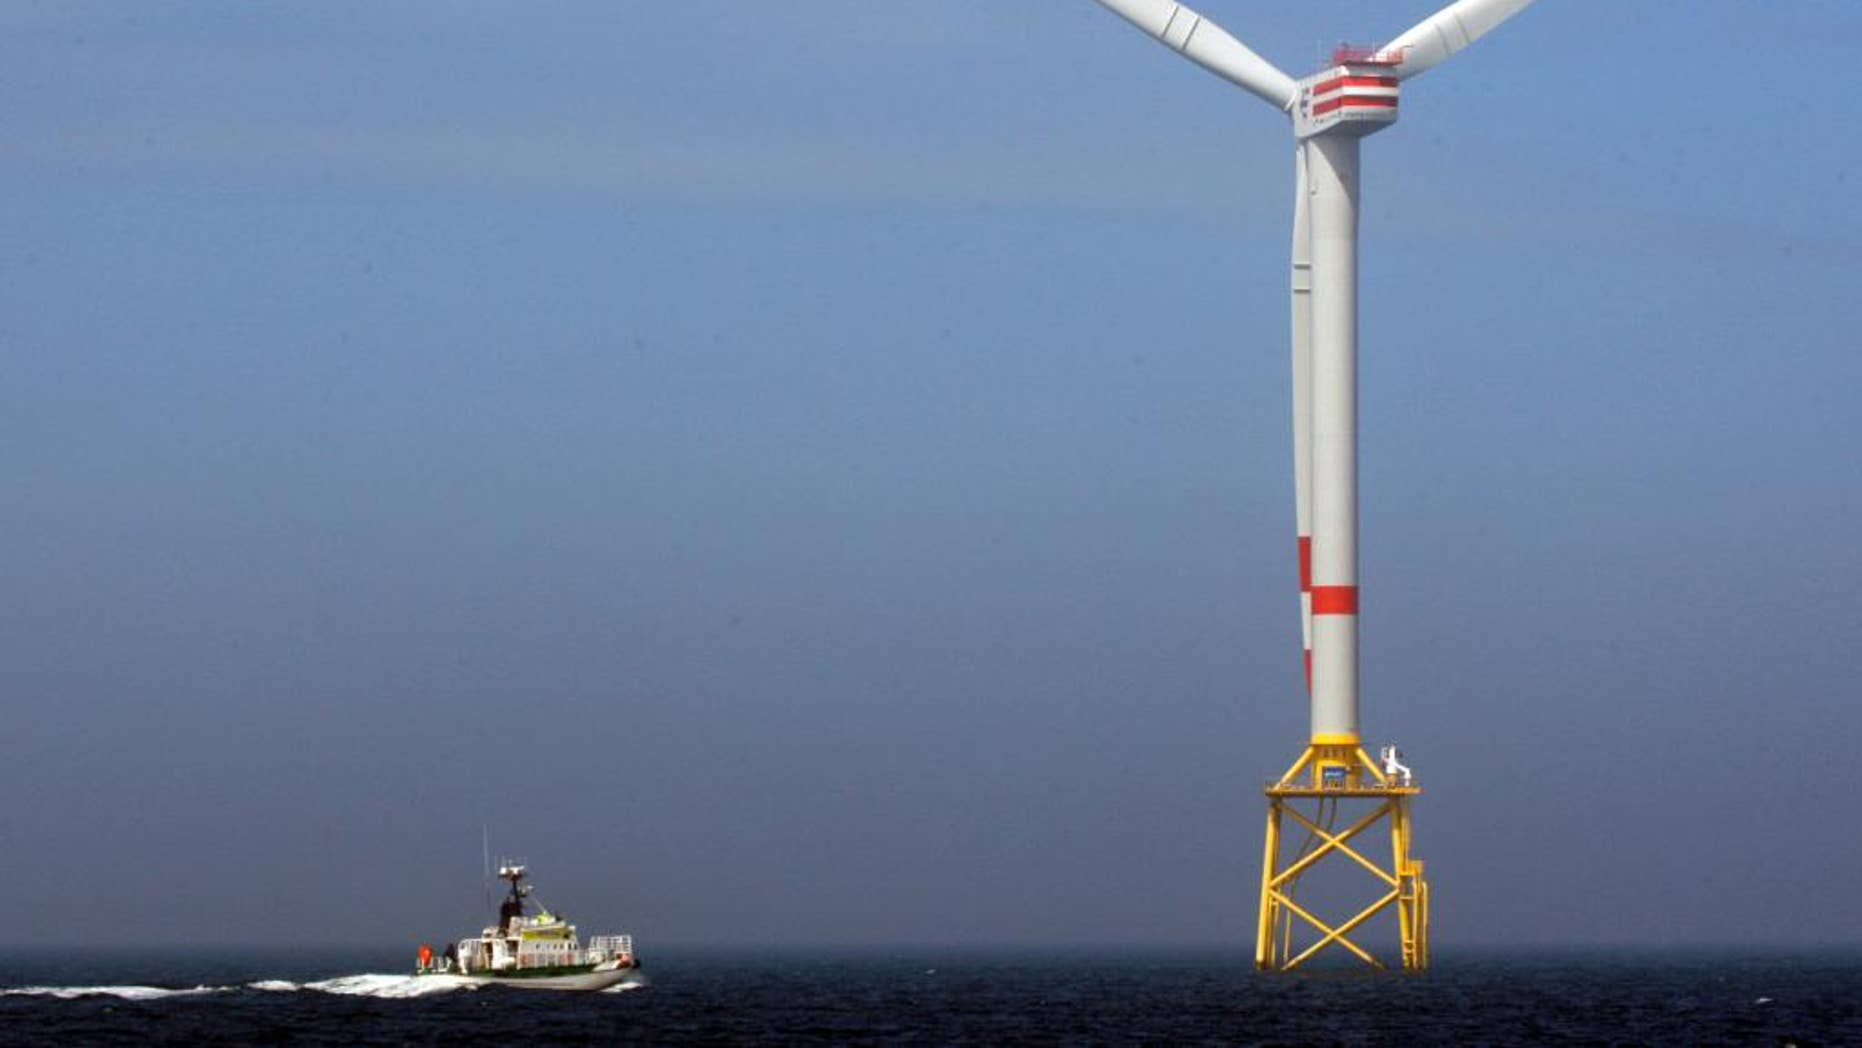 FILE - In this April 26, 2010 file photo a boat approaches a German windmill offshore power plant in the North Sea, 45 km off the coast of Norddeich.  (AP Photo/Frank Augstein, file)